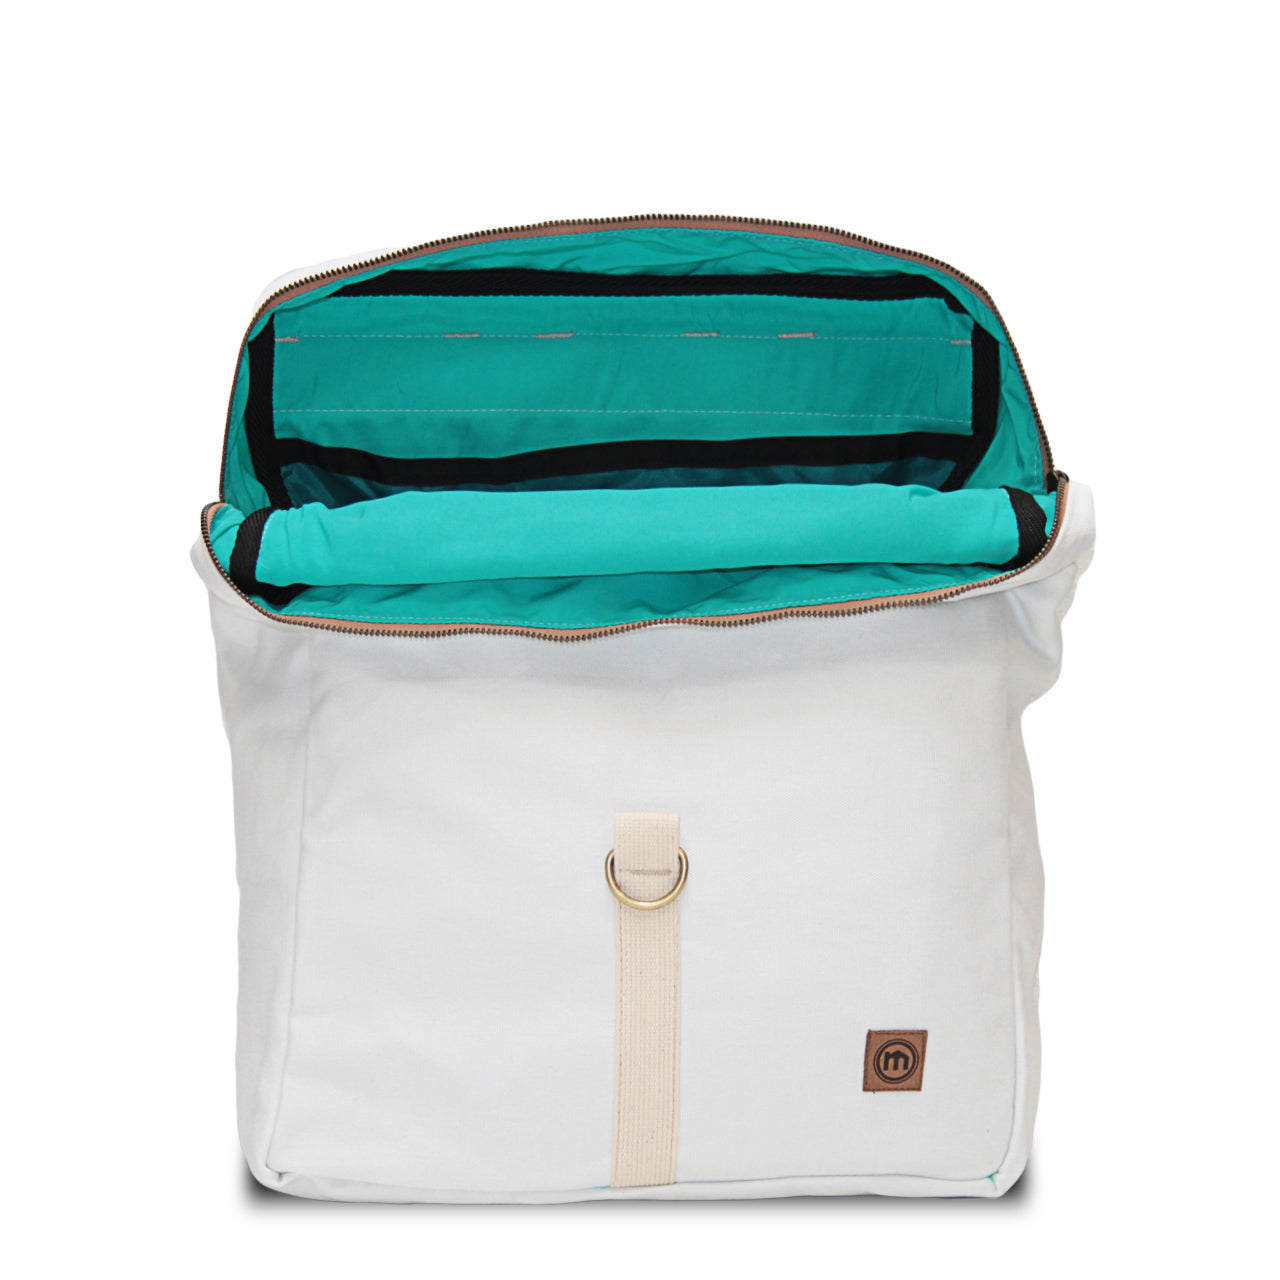 fc06e6e82 White Traveler Backpack - Mitscoots Outfitters